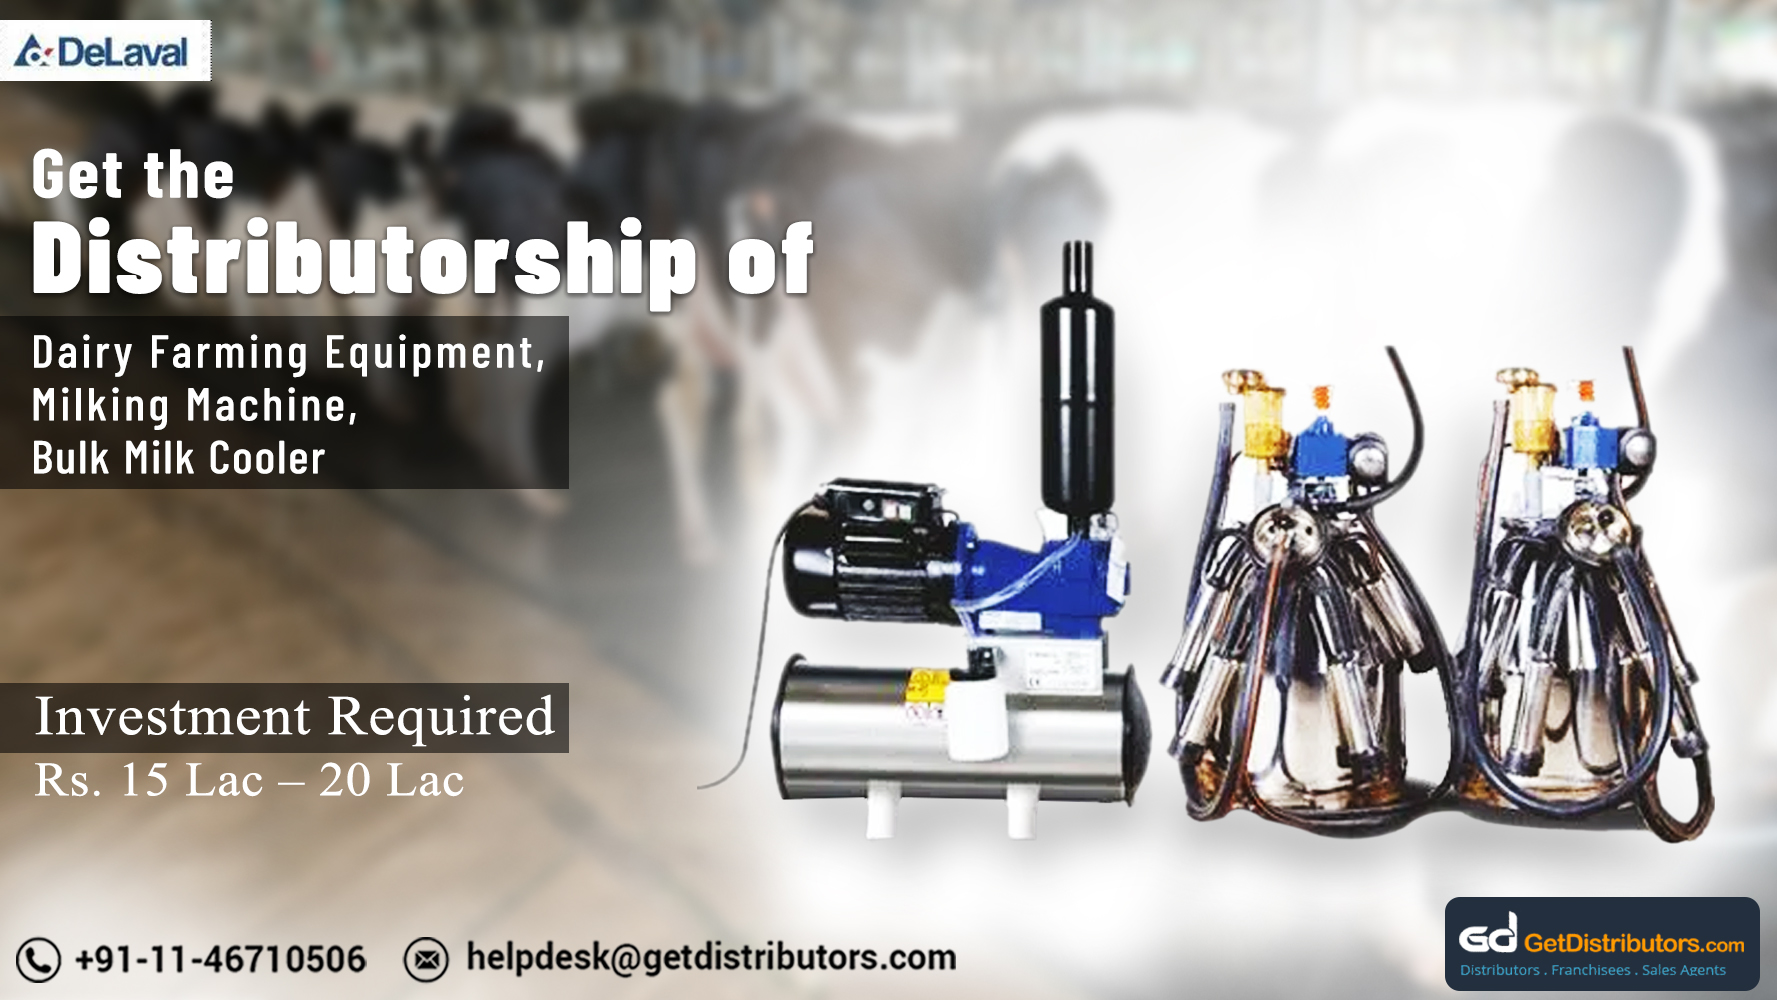 Extensive Array Of Dairy Equipment & Allied Machines At Affordable Costs